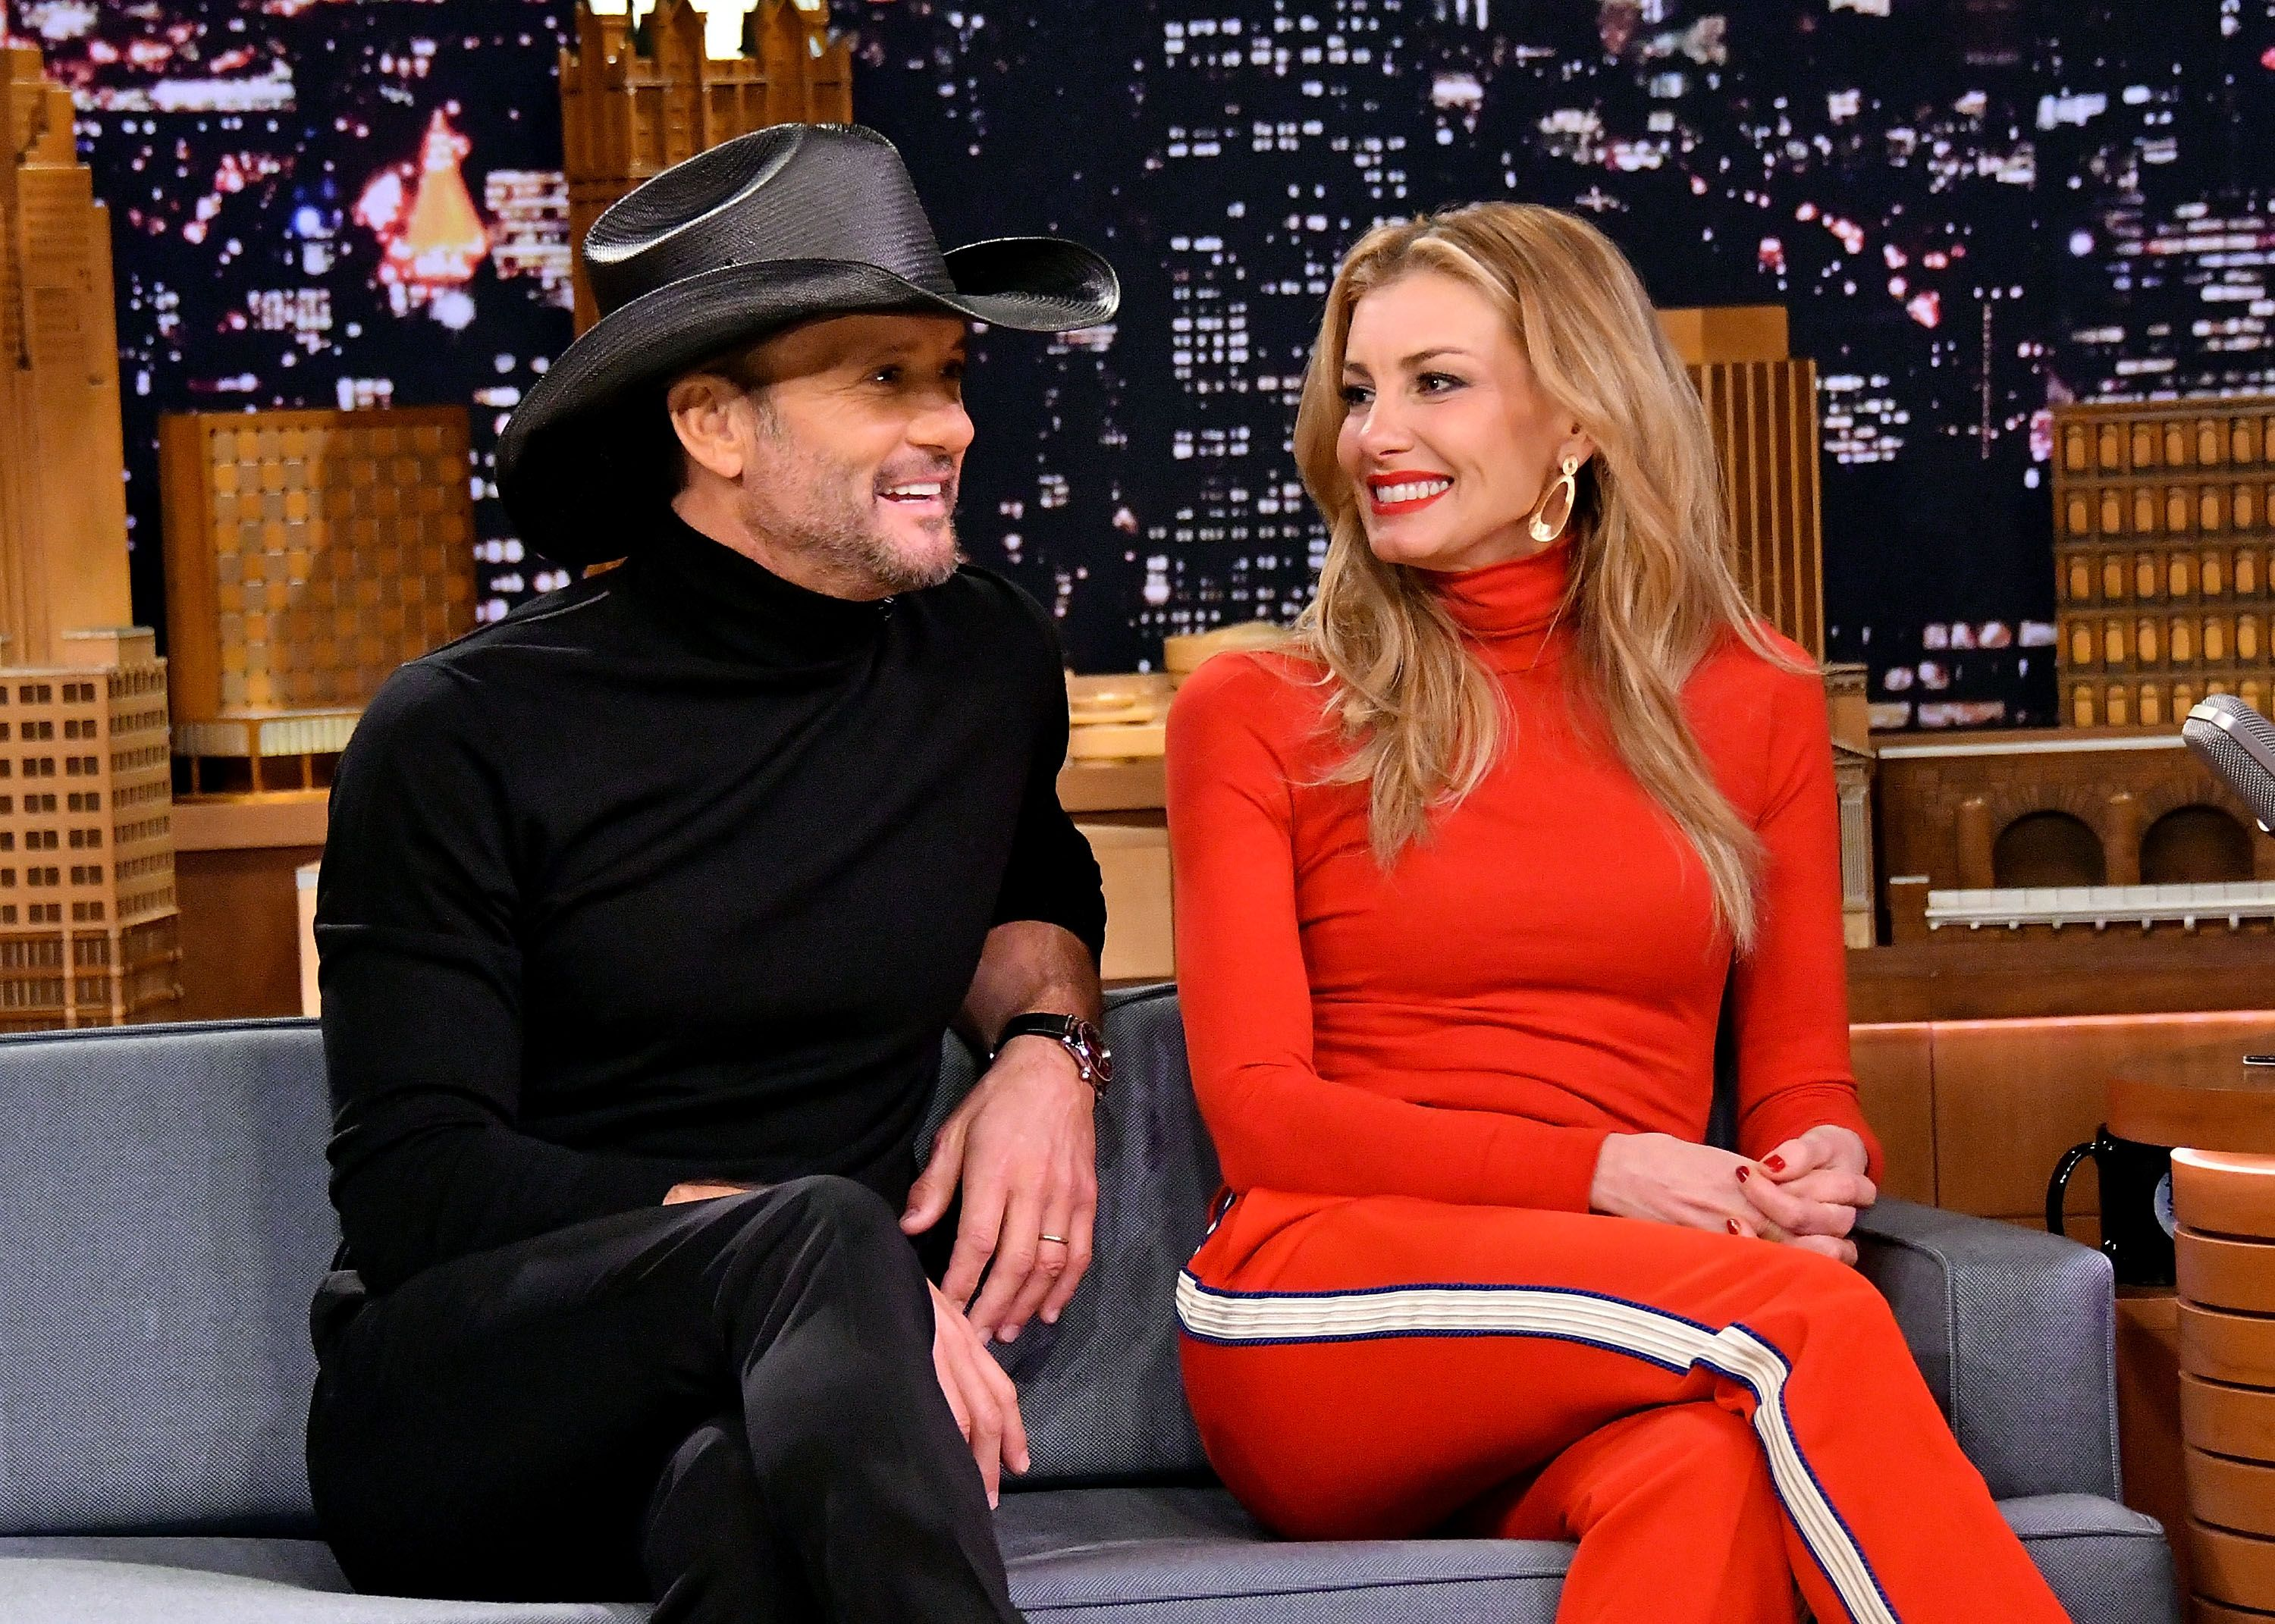 """Singer/songwriter Tim McGraw and wife/singer Faith Hill are interviewed on """"The Tonight Show Starring Jimmy Fallon"""" at Rockefeller Center on November 16, 2017   Photo: Getty Images"""